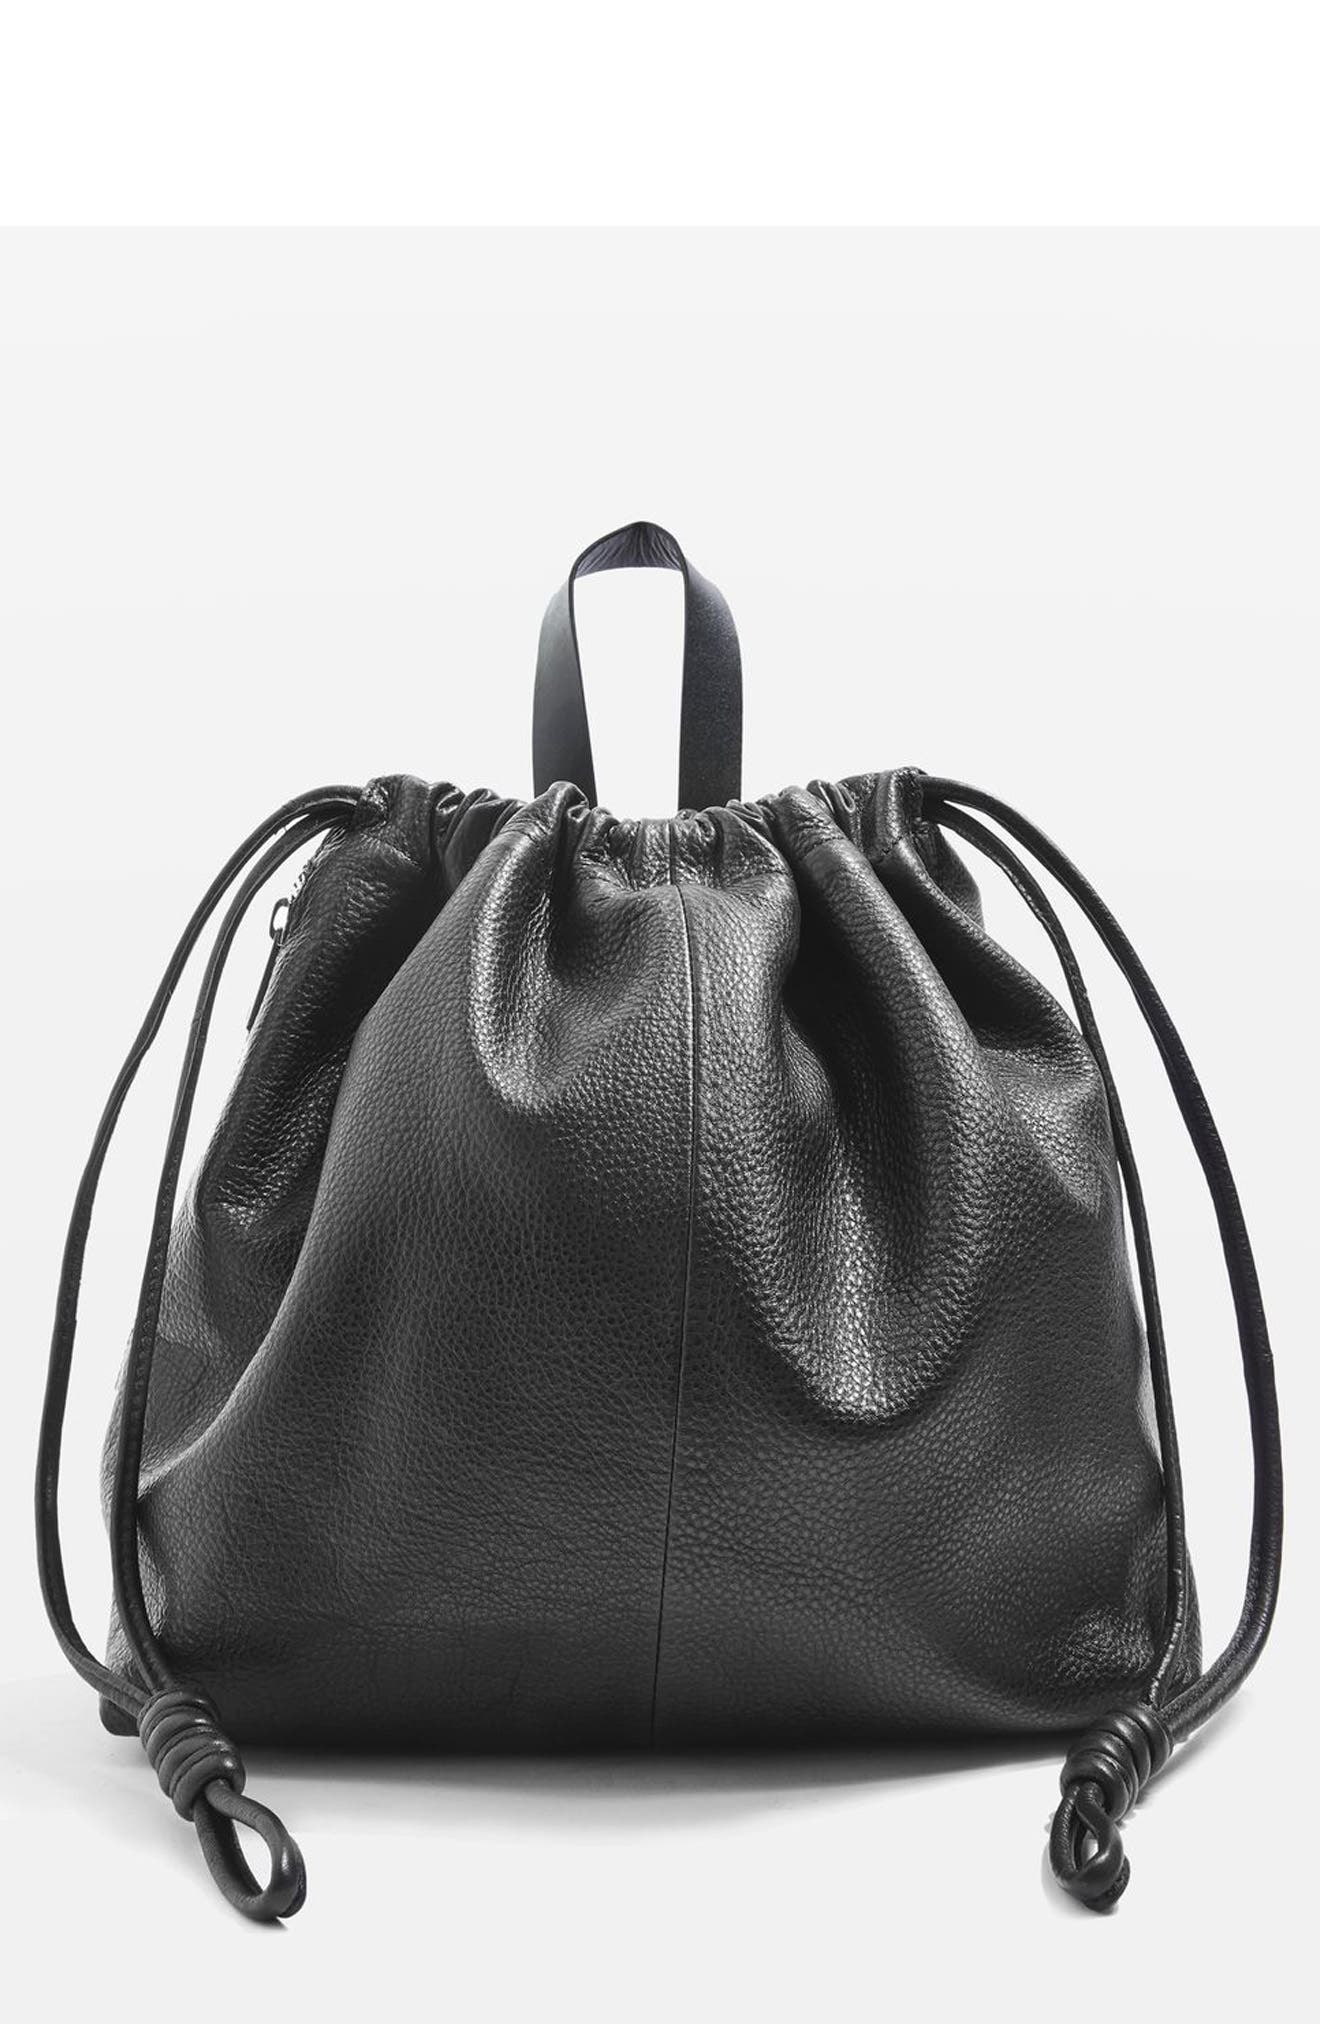 Topshop Leather Drawstring Backpack